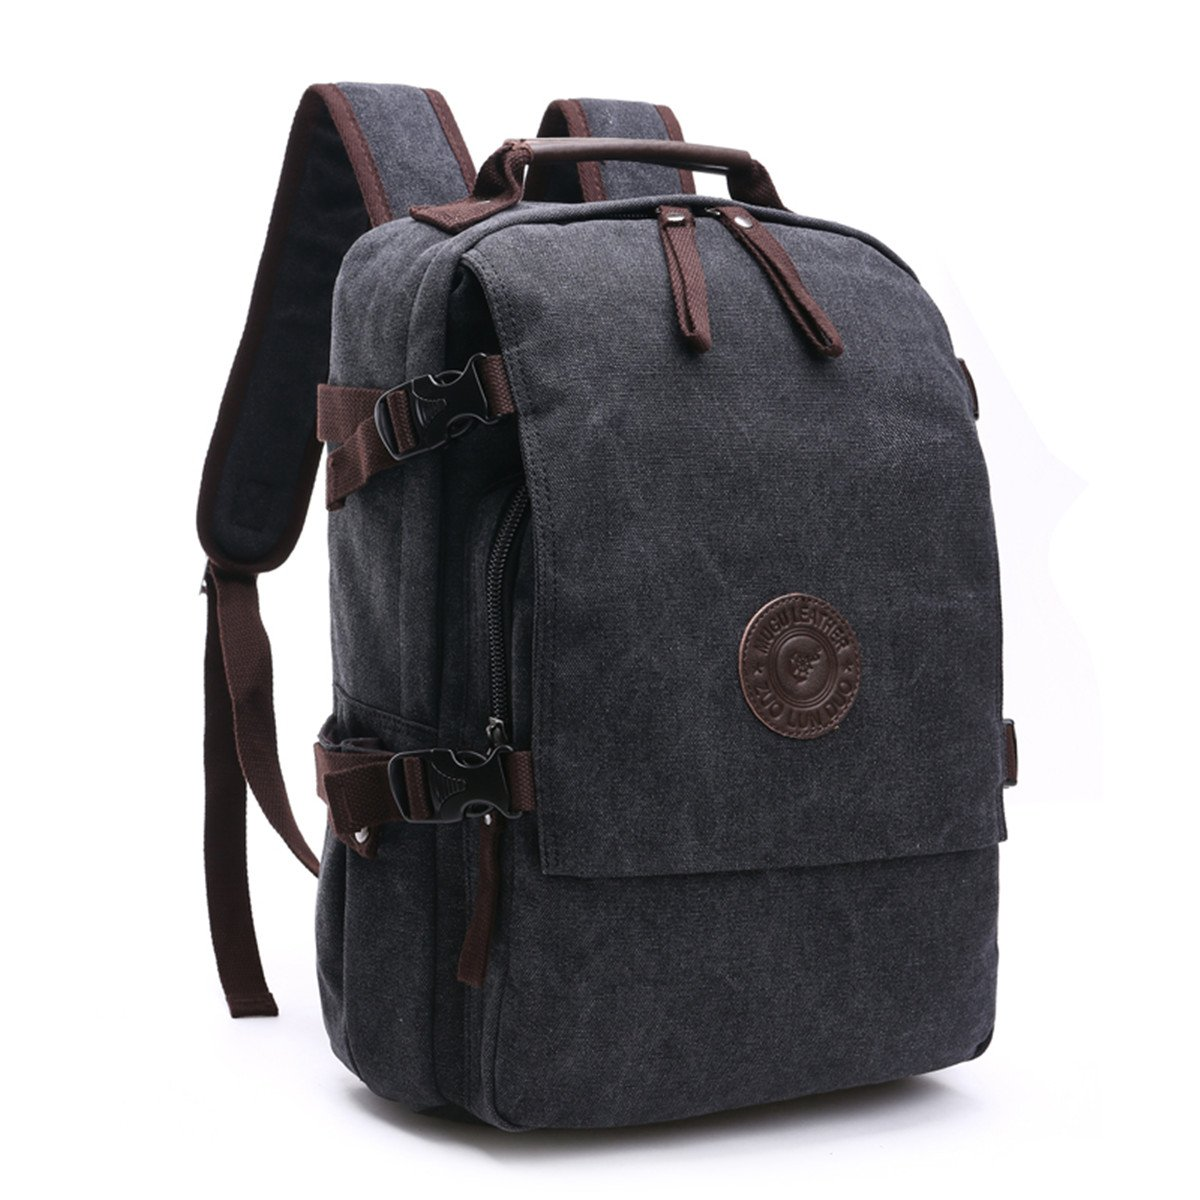 a2c37668f Loietnt Laptop Backpack,Vintage Casual Canvas Backpack Travel Rucksack  Satchel Backpack Camping Backpack for Men School/Hiking/Outdoor Casual  Daypacks ...